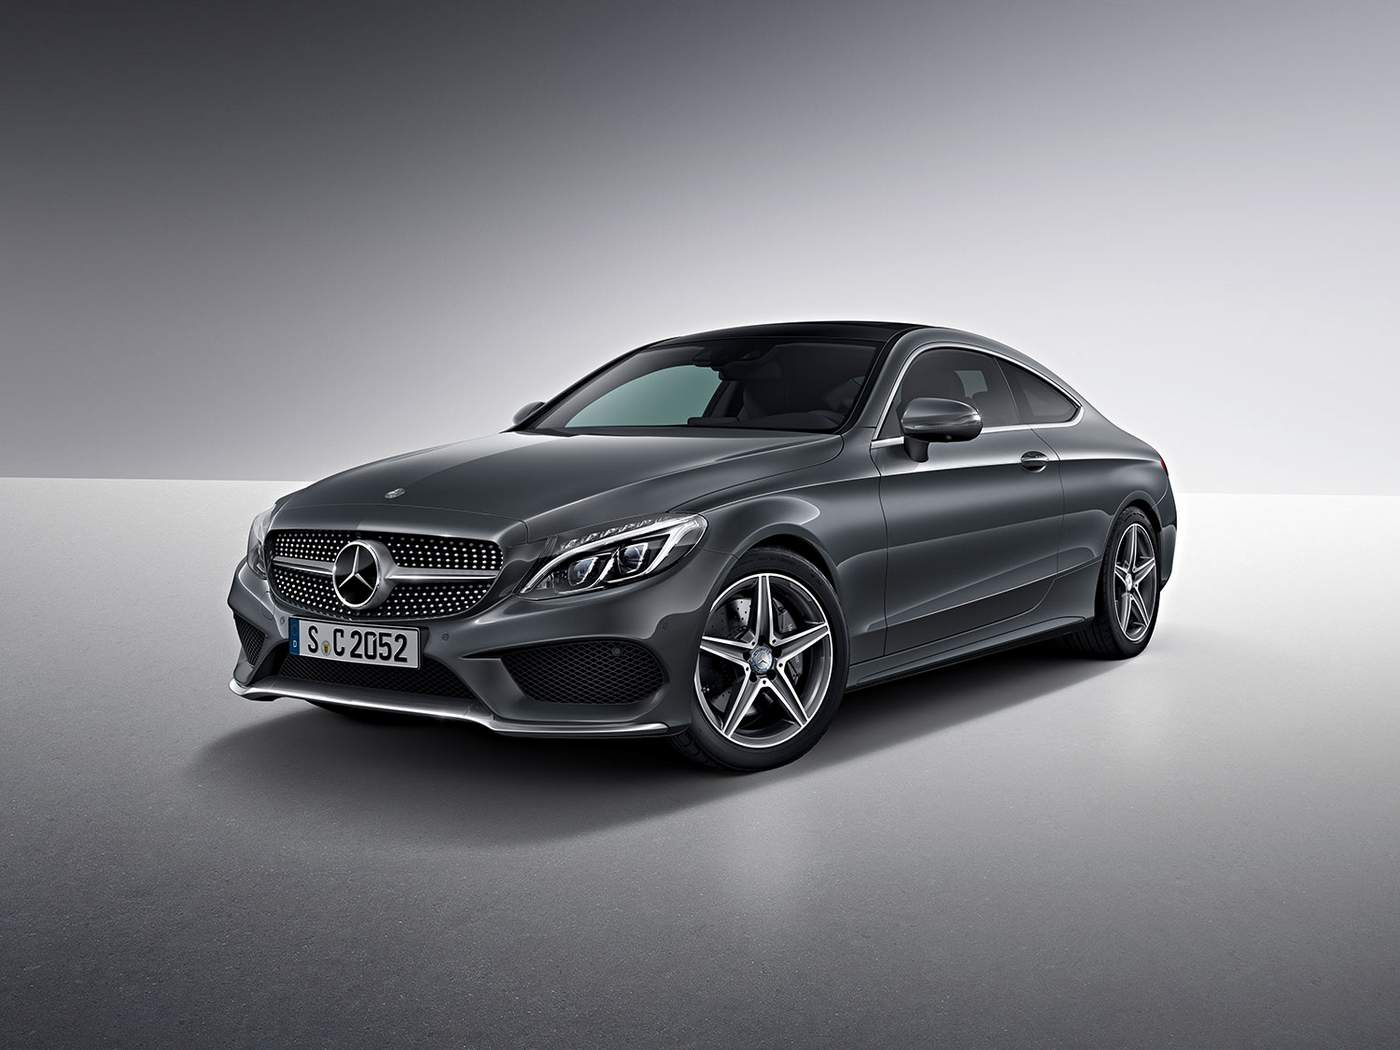 mercedes classe c 250 sport chega por r 245 9 mil brasil car blog br. Black Bedroom Furniture Sets. Home Design Ideas